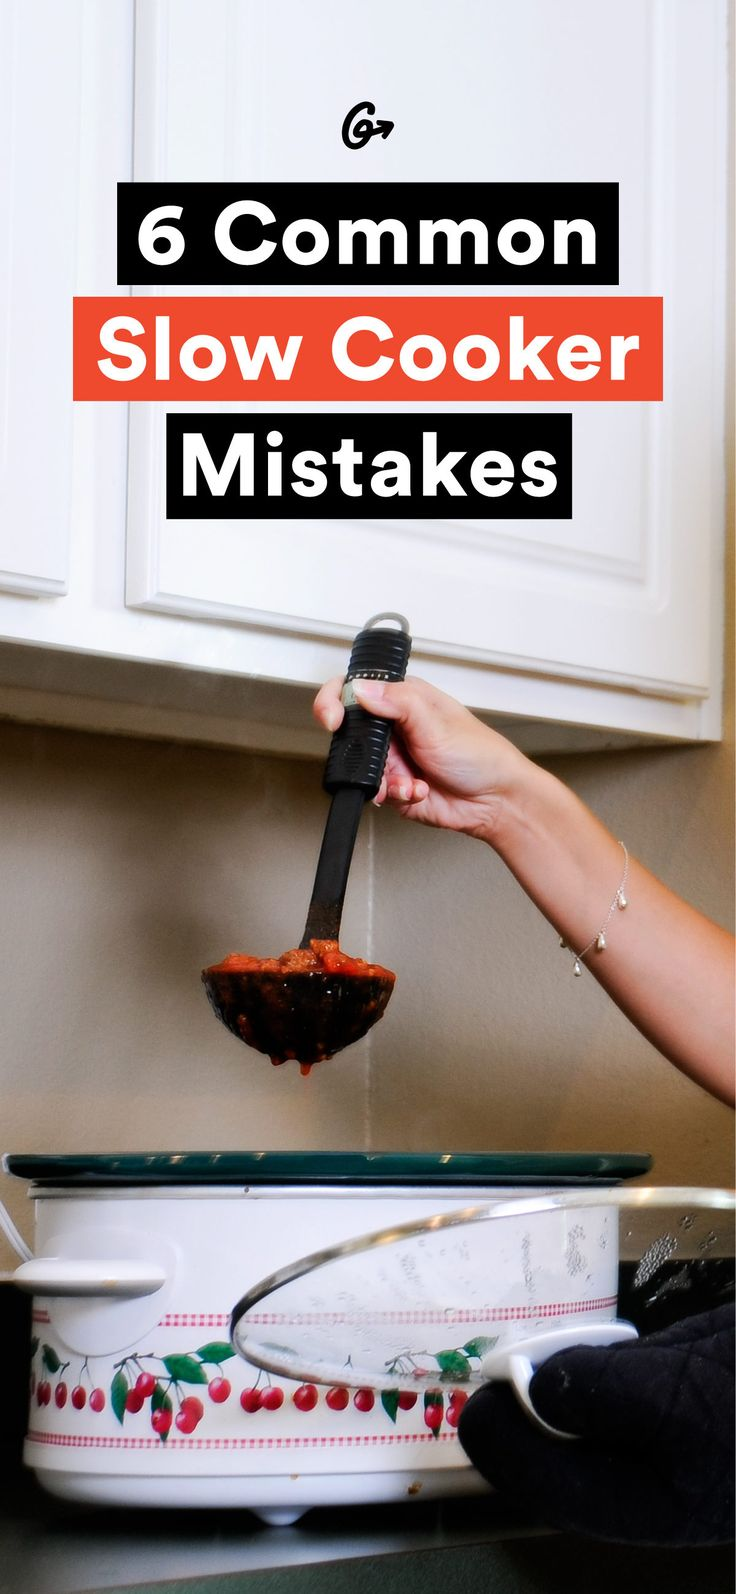 Your food will thank you. #greatist http://greatist.com/eat/common-slow-cooker-mistakes